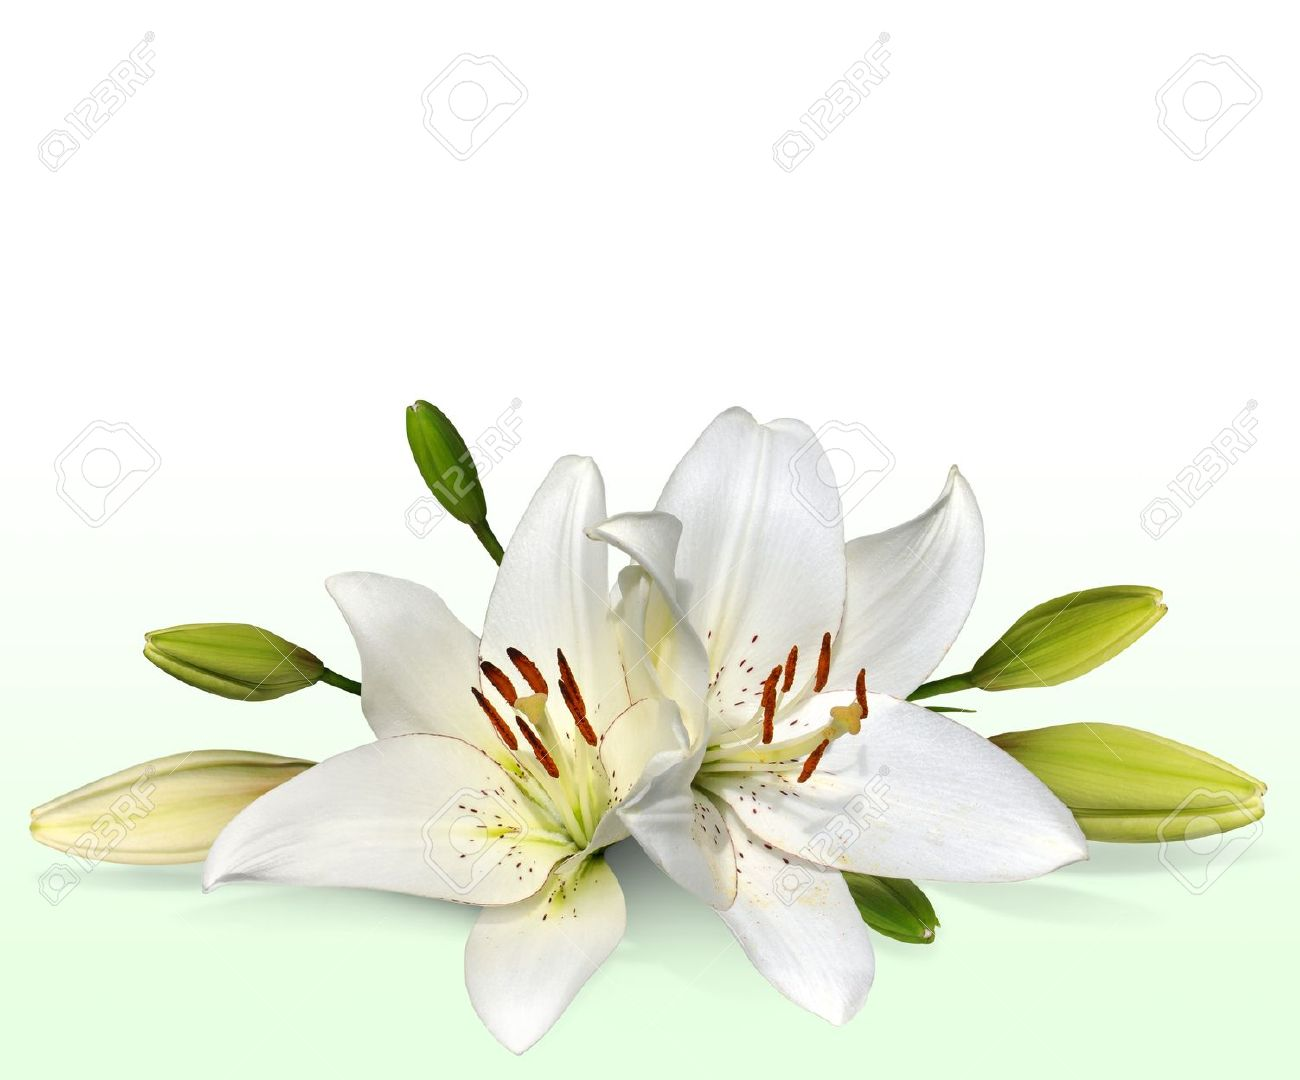 Easter lily flowers also known as november lilies stock photo easter lily flowers also known as november lilies stock photo 12782618 izmirmasajfo